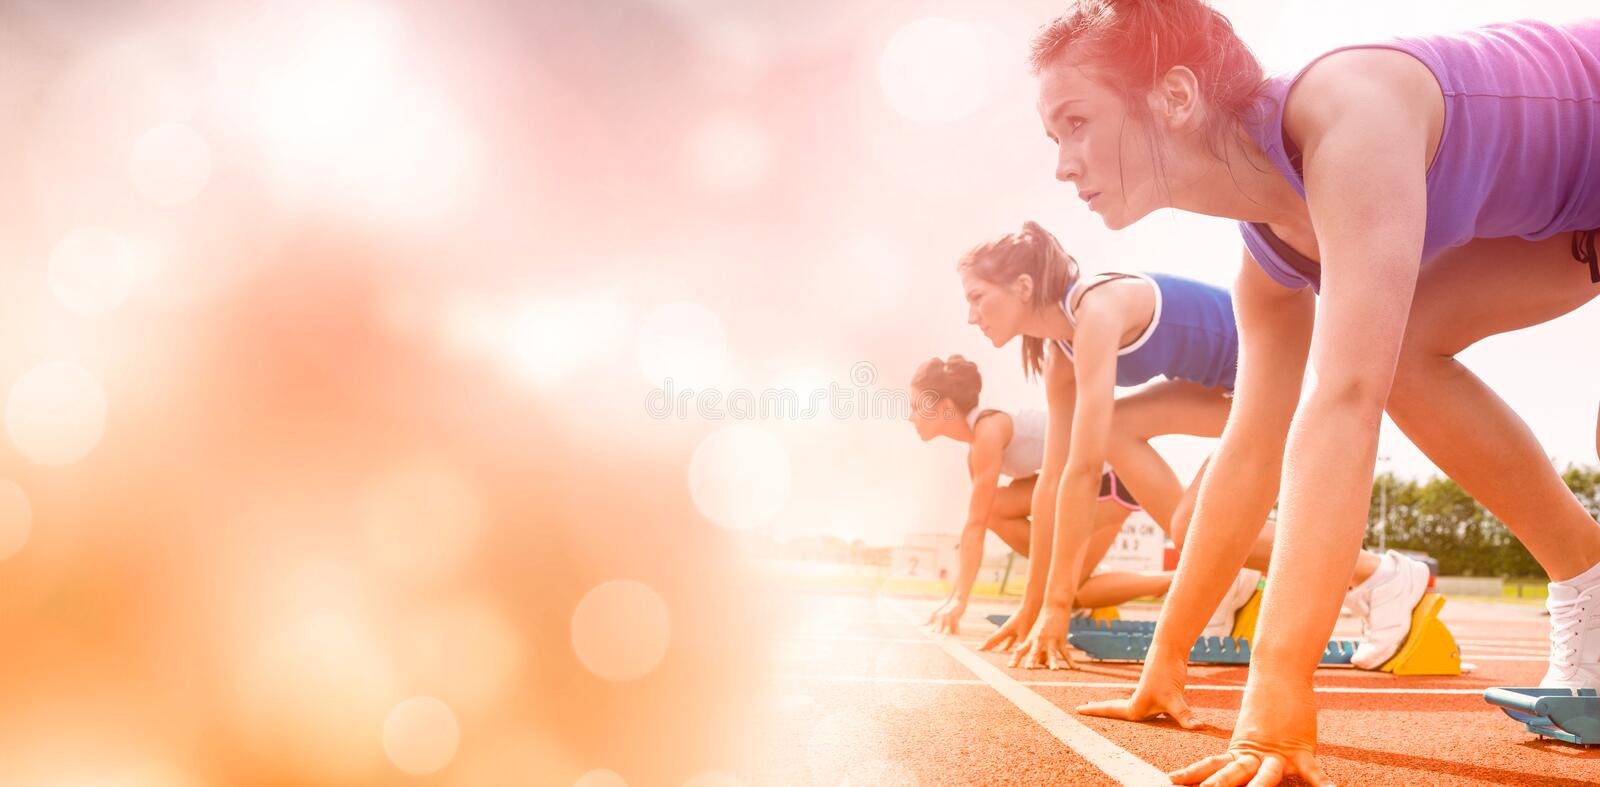 Side view of women on starting line stock photography